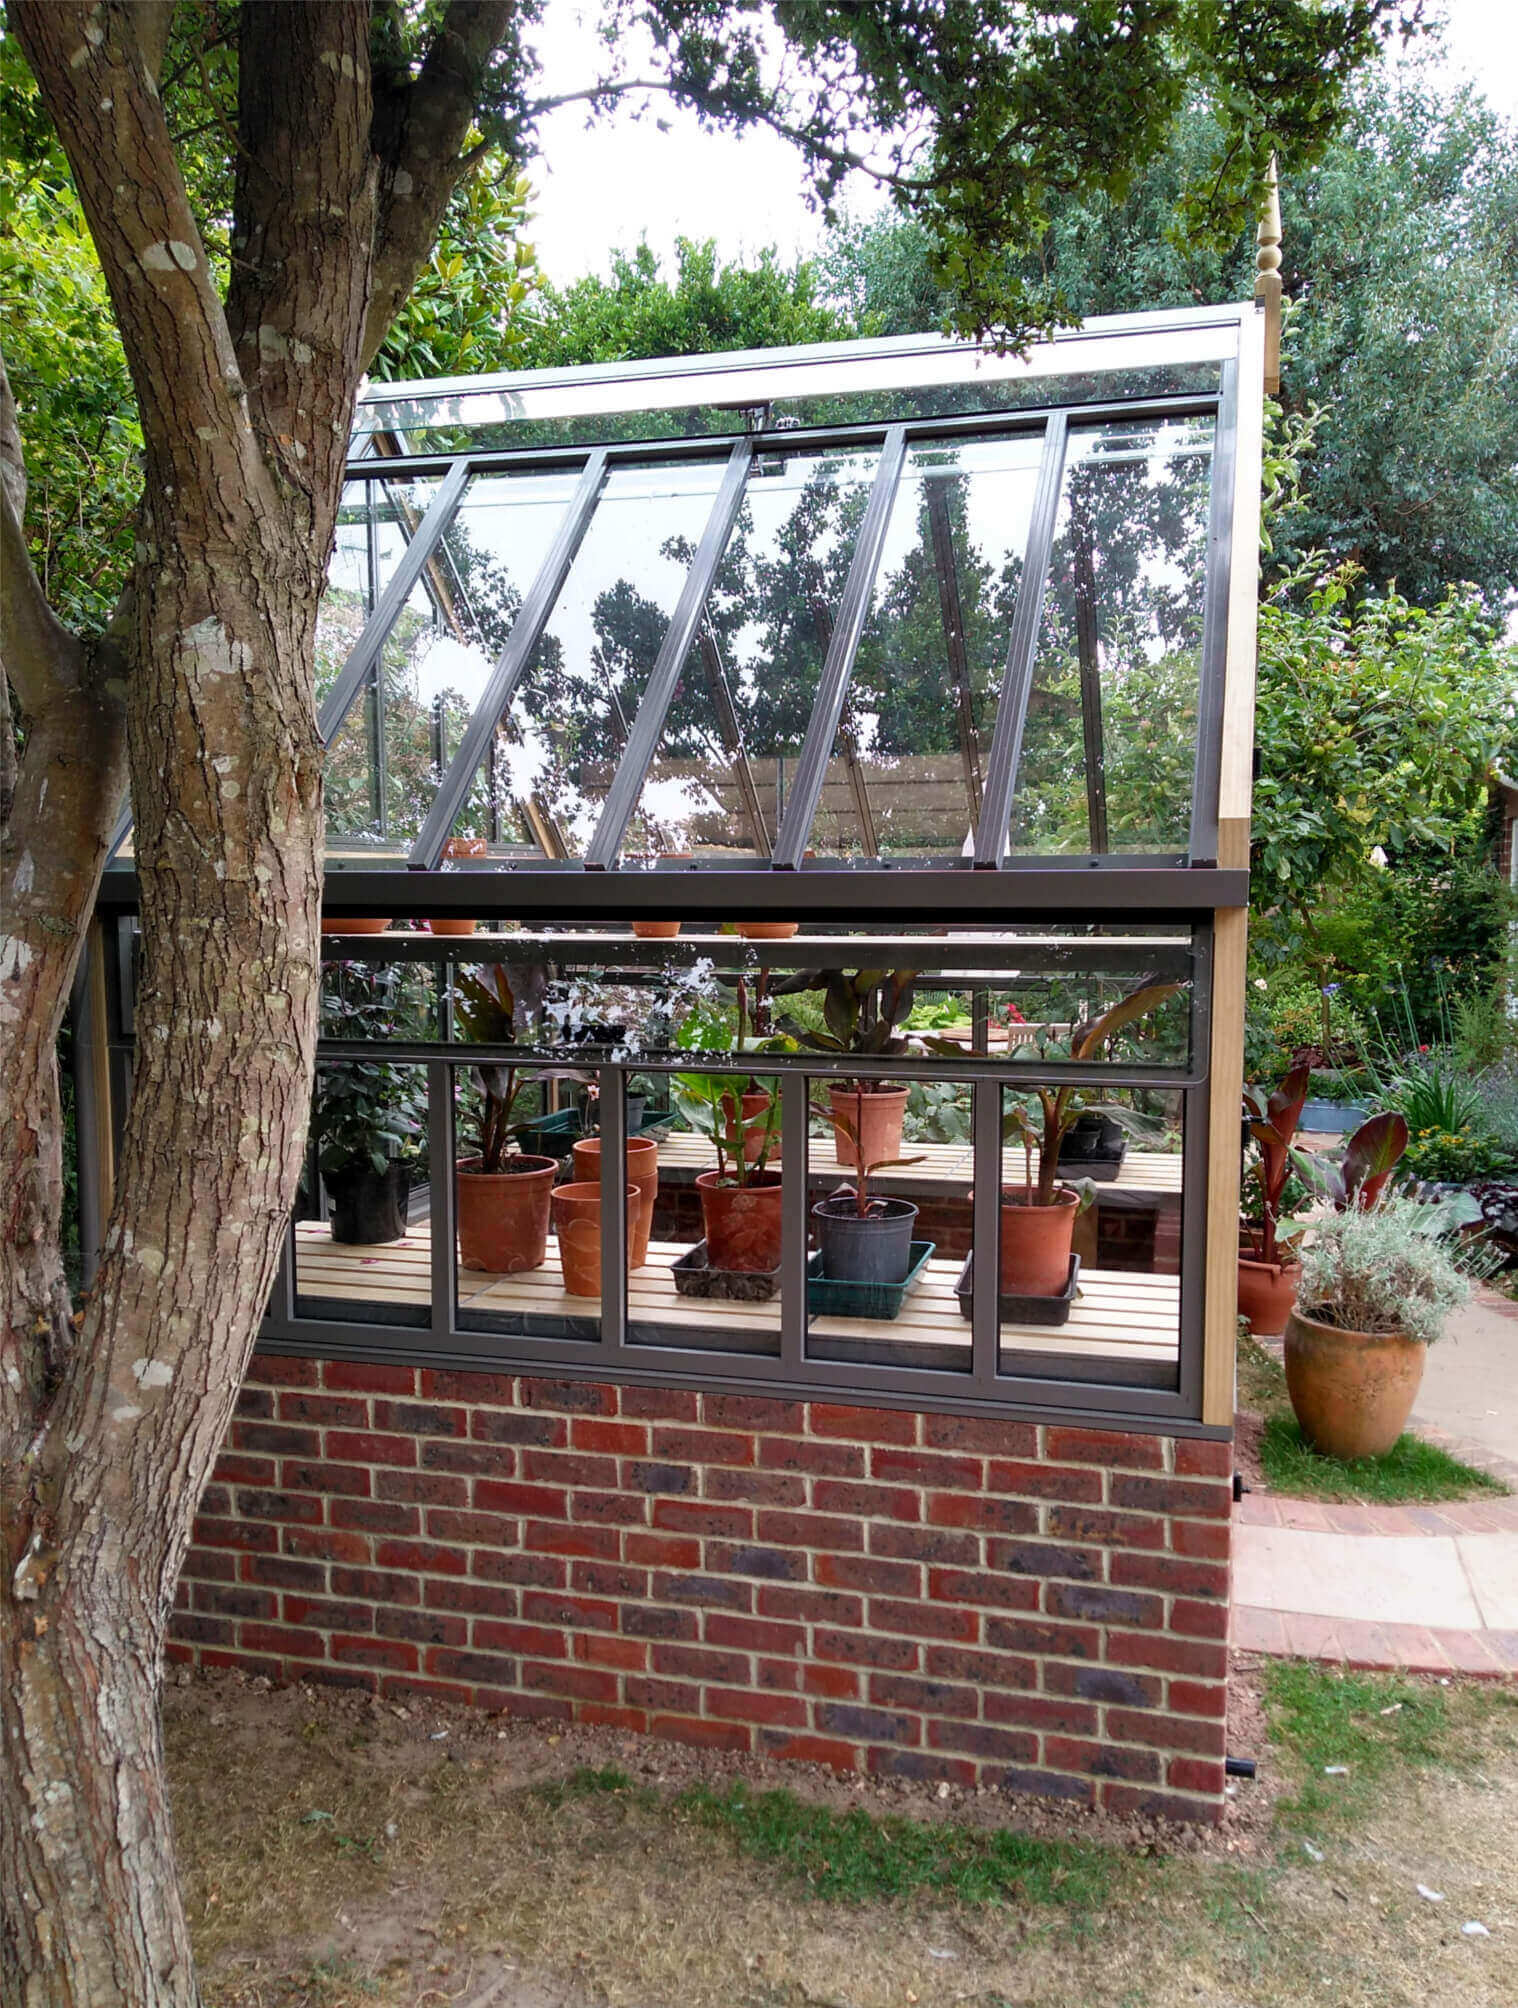 Side view of Victorian Greenhouse on wall